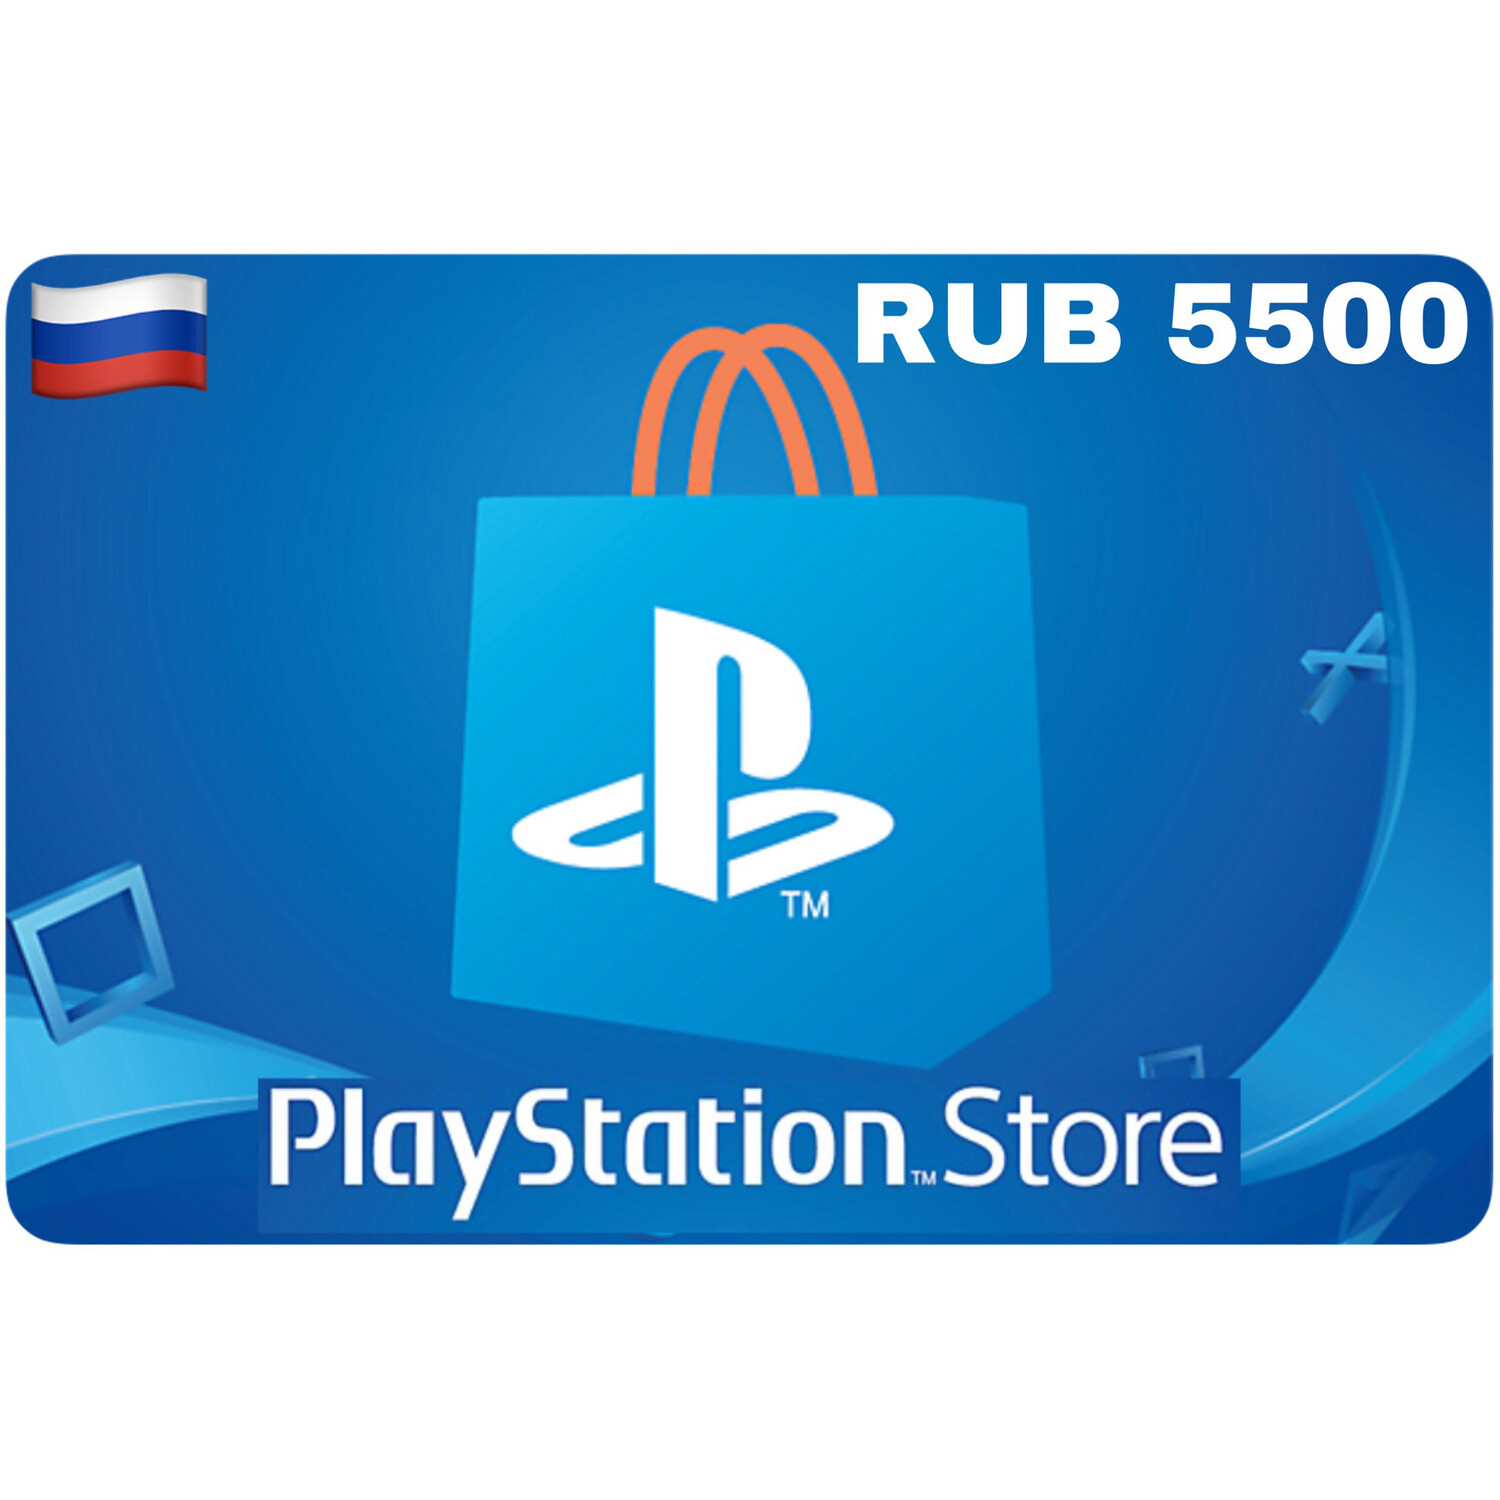 Playstation Store Gift Card Russia RUB 5500